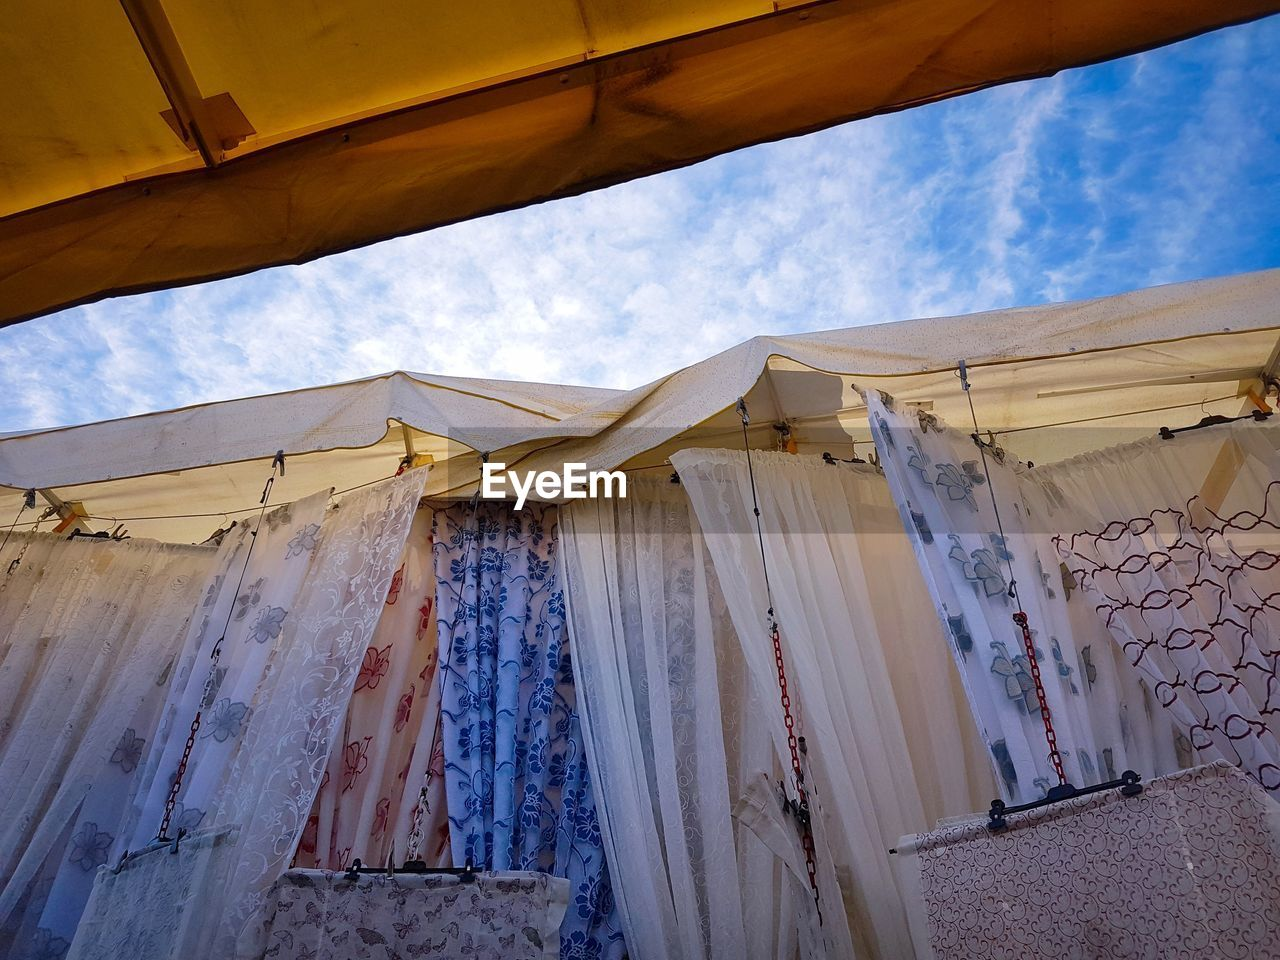 architecture, sky, curtain, built structure, low angle view, window, textile, day, cloud - sky, no people, building exterior, drying, outdoors, nature